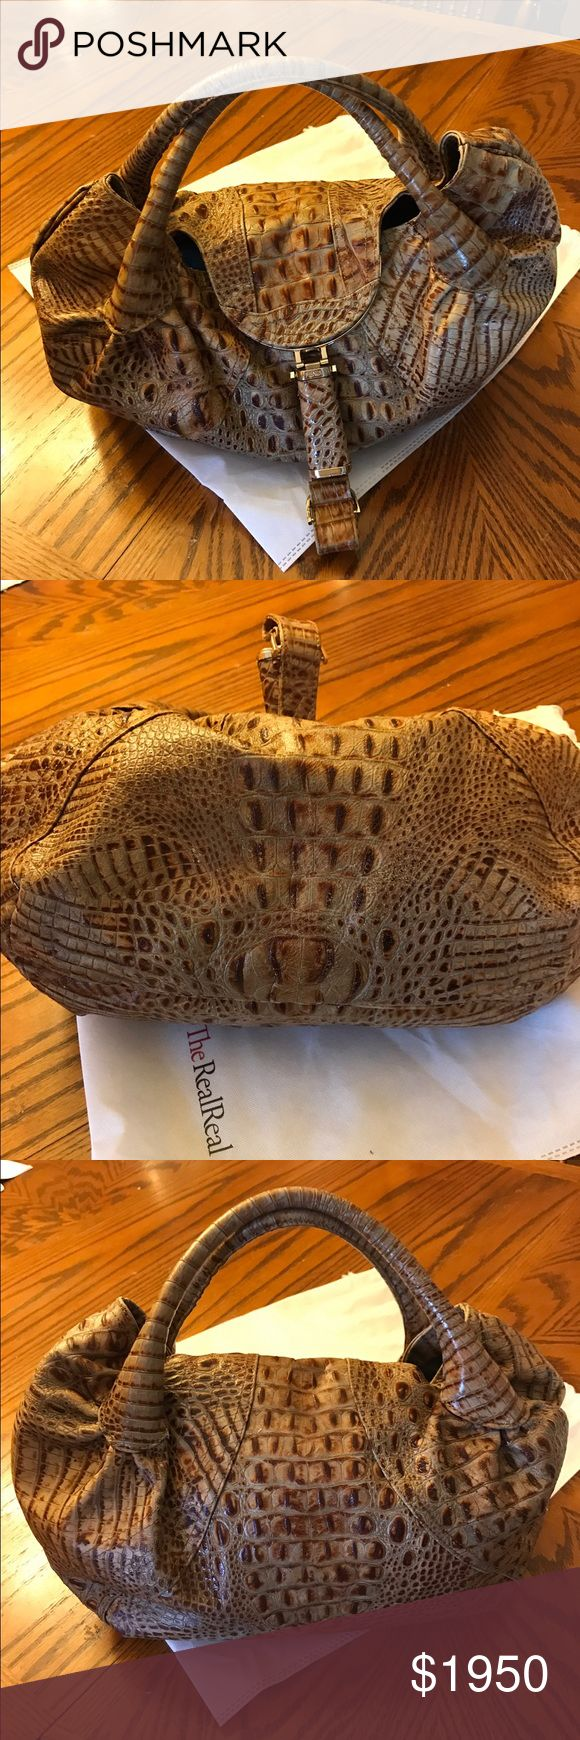 Crocodile Fendi spy bag Nice spy bag of crocodile very big and roomy 17x12 few scuffs on piping not noticeable ❤️ love this bag Fendi Bags Satchels